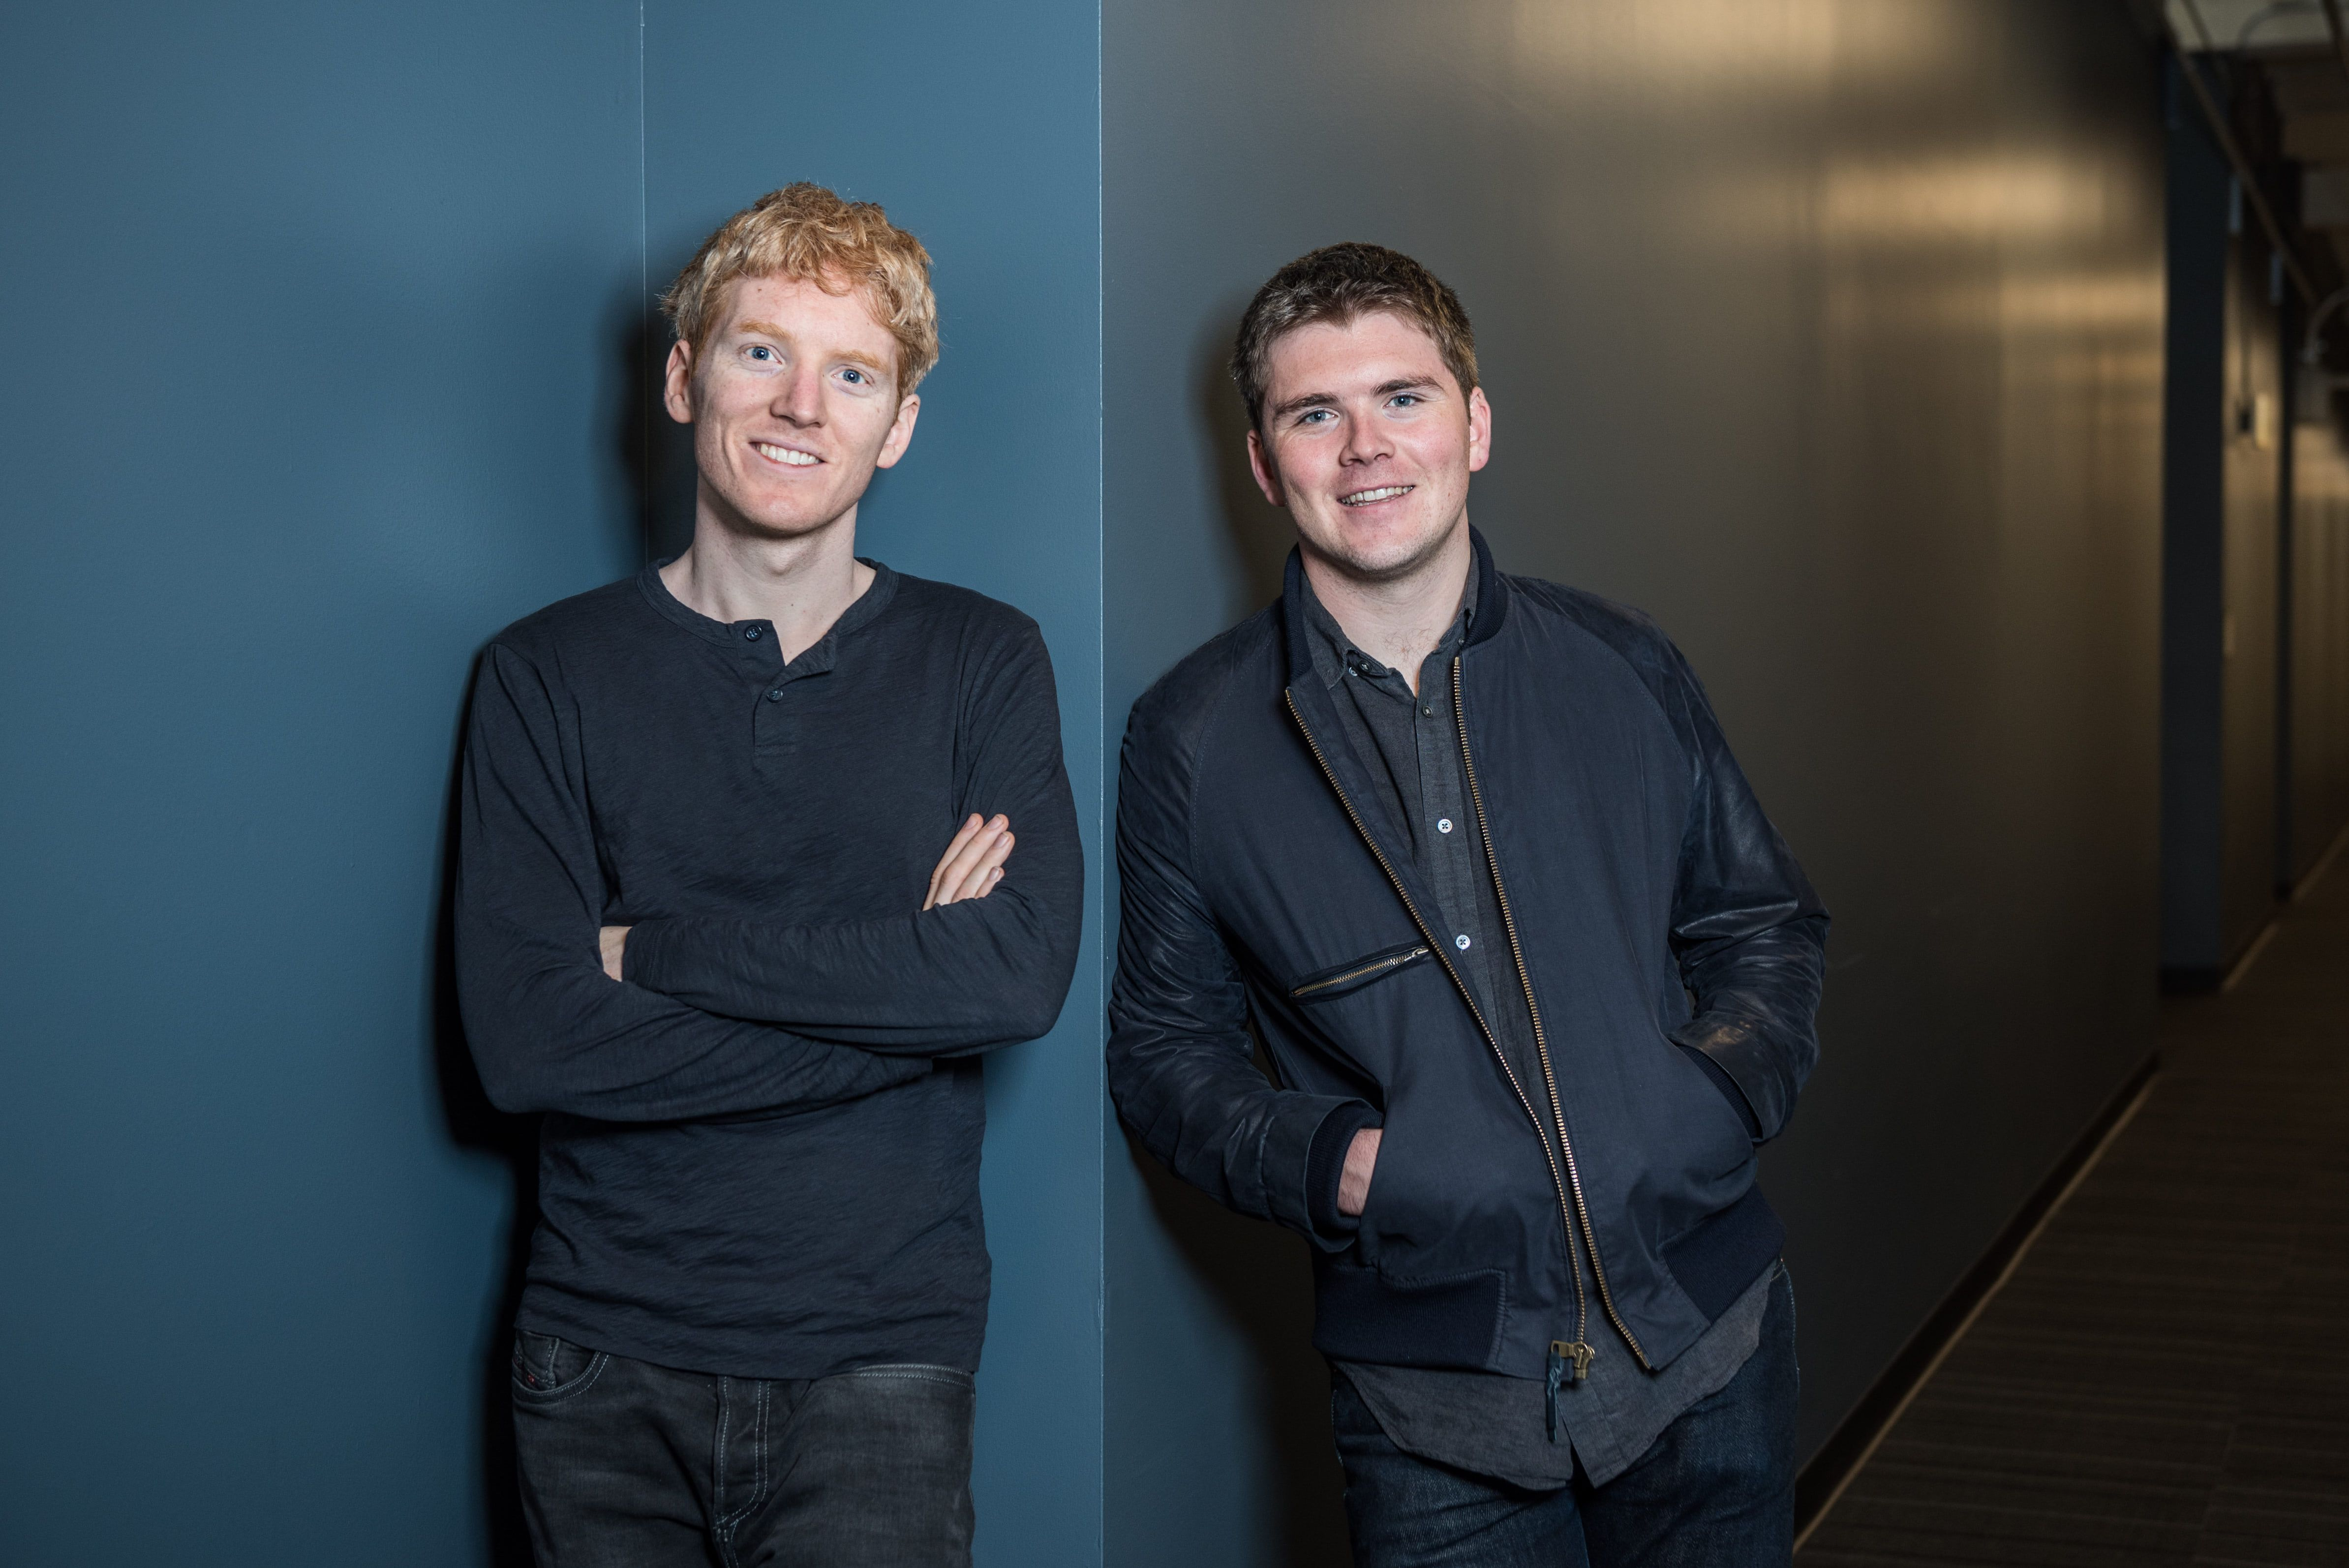 Stripe founders Patrick and John Collison